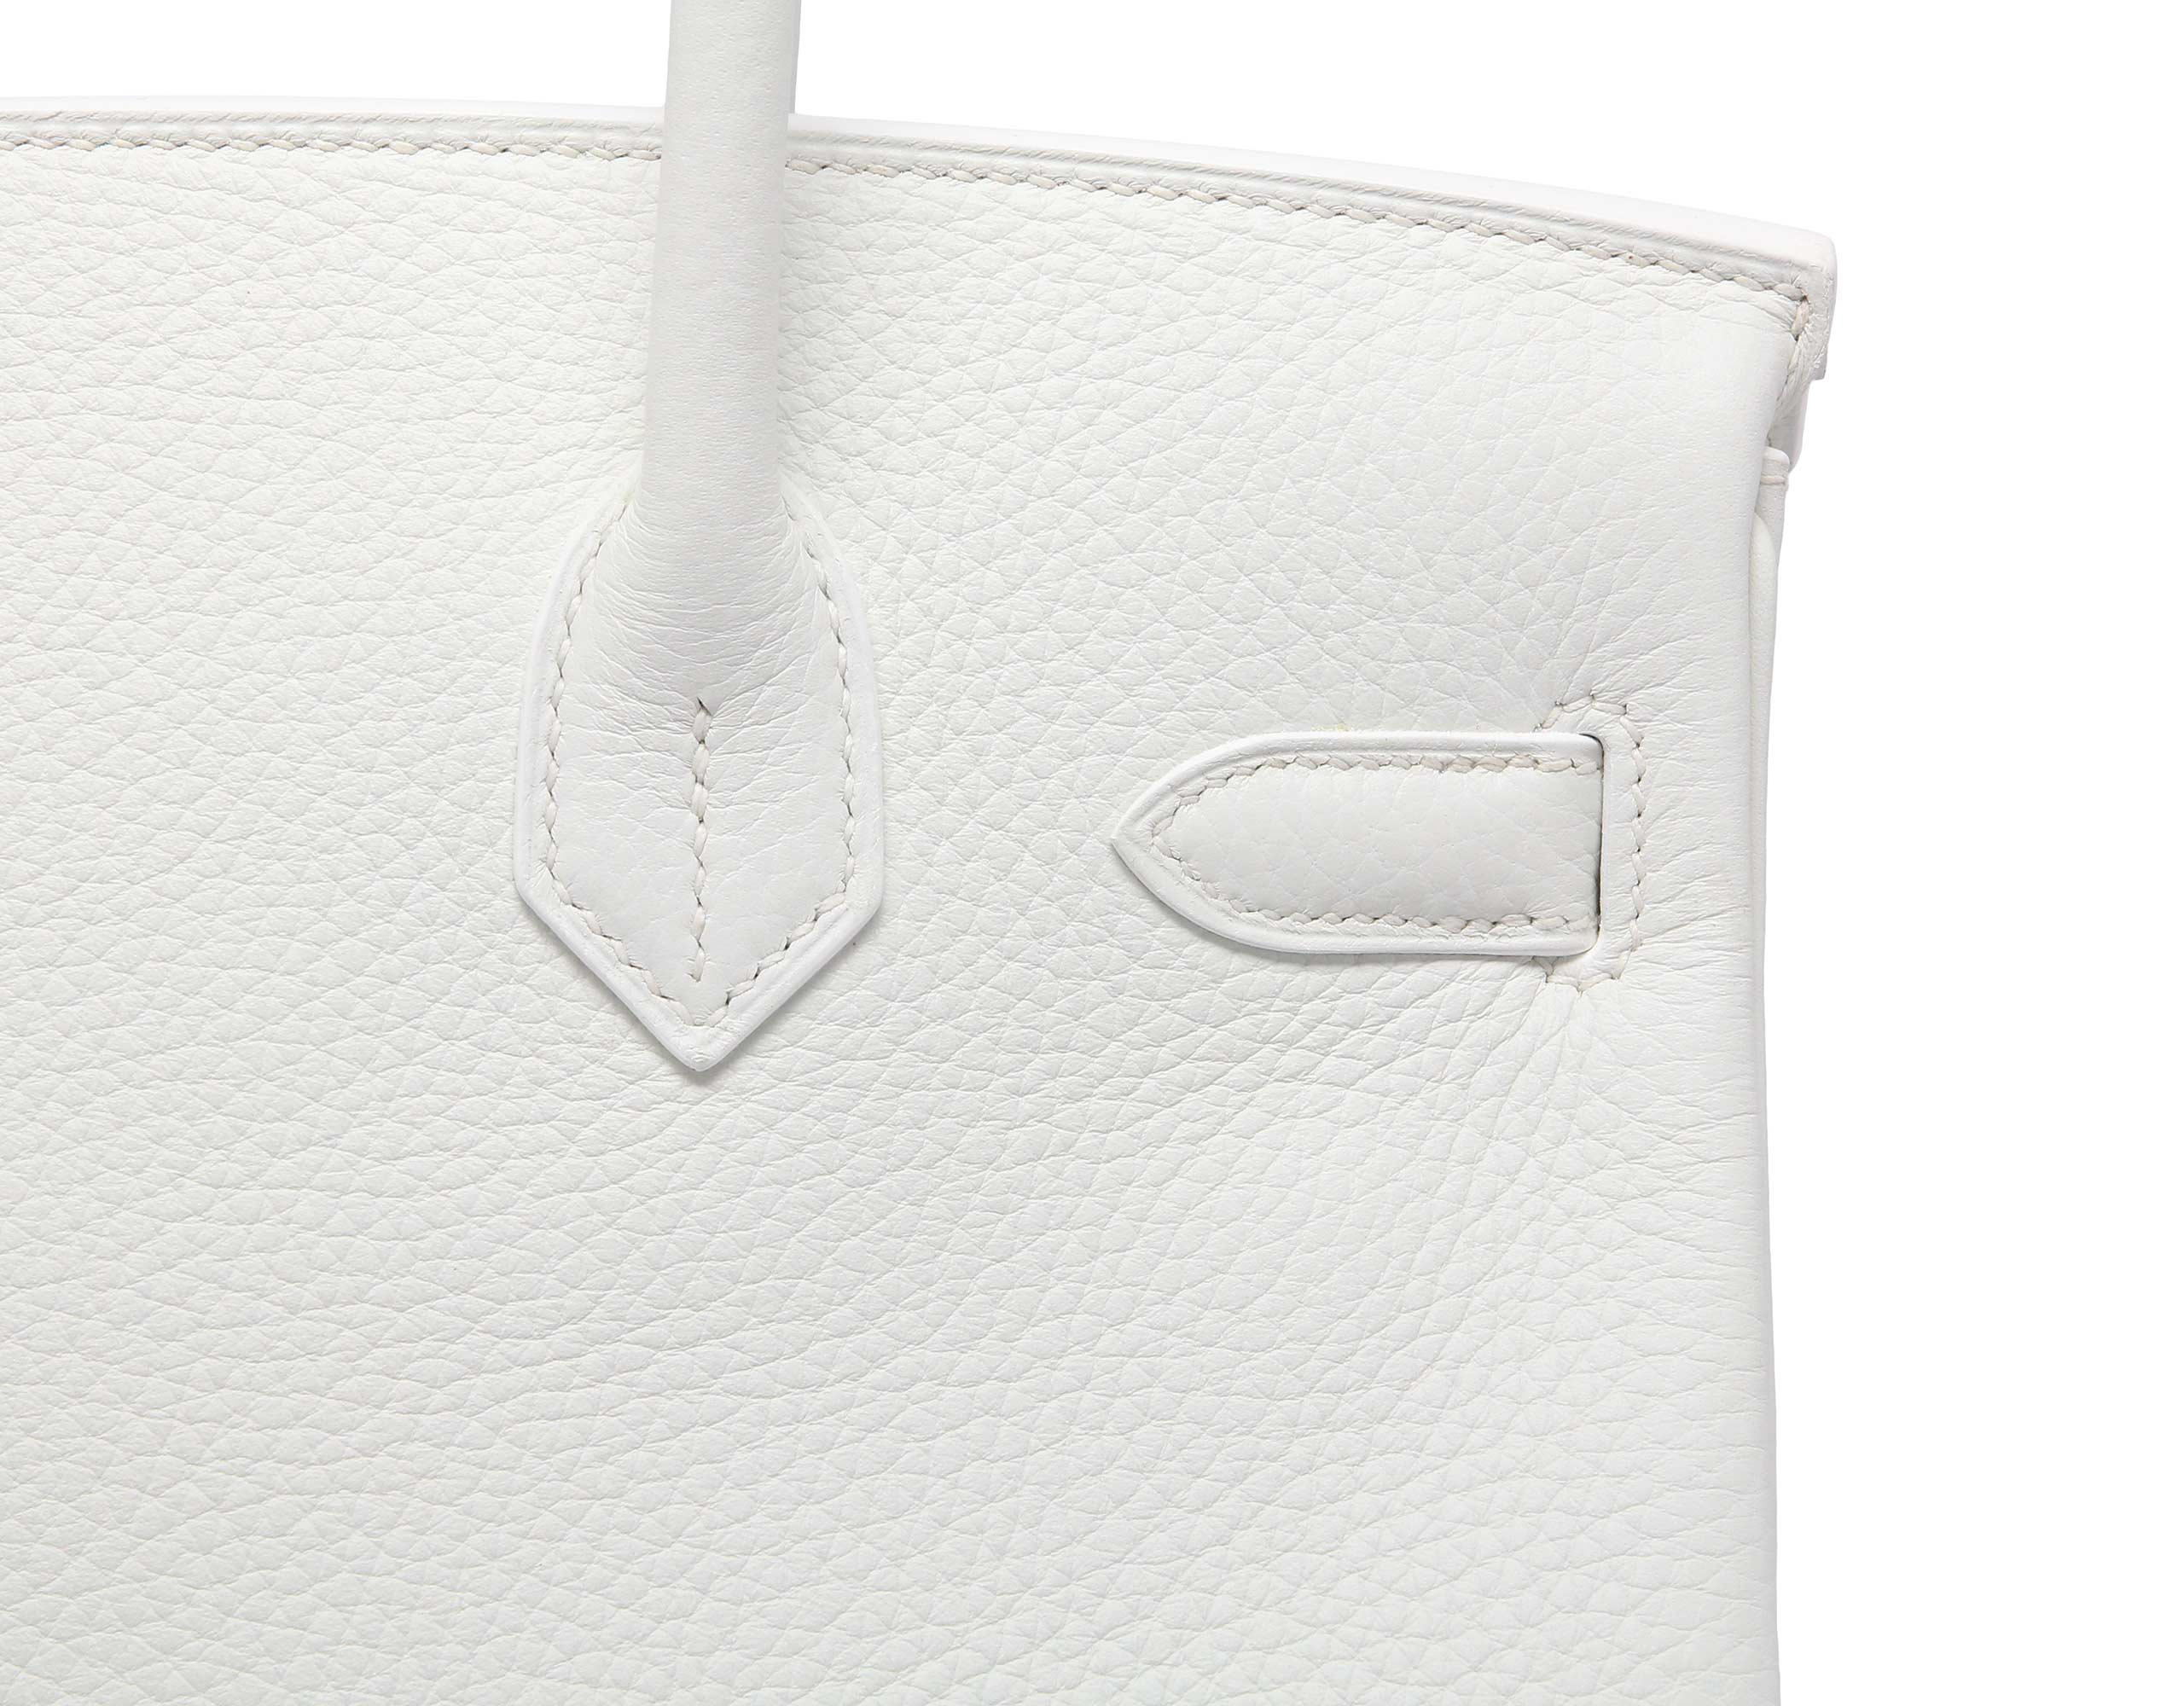 Hermes Birkin 30cm White Clemence with Gold | Bags of Luxury